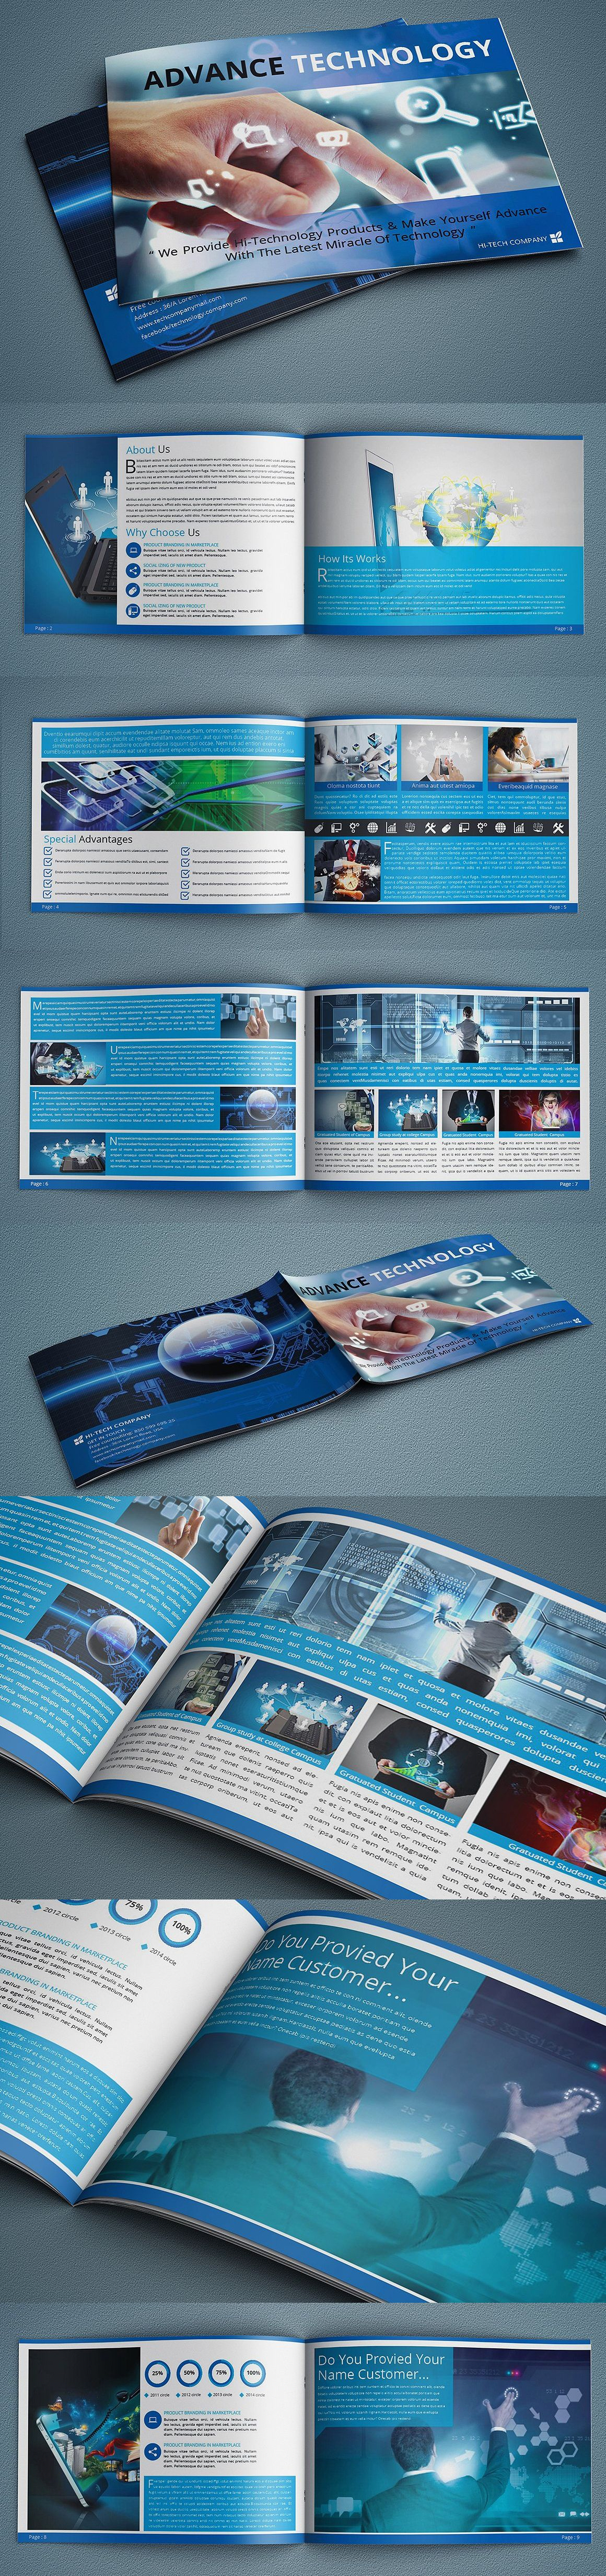 Advance Technology Brochure Template Indd Pdf  Brochure Design